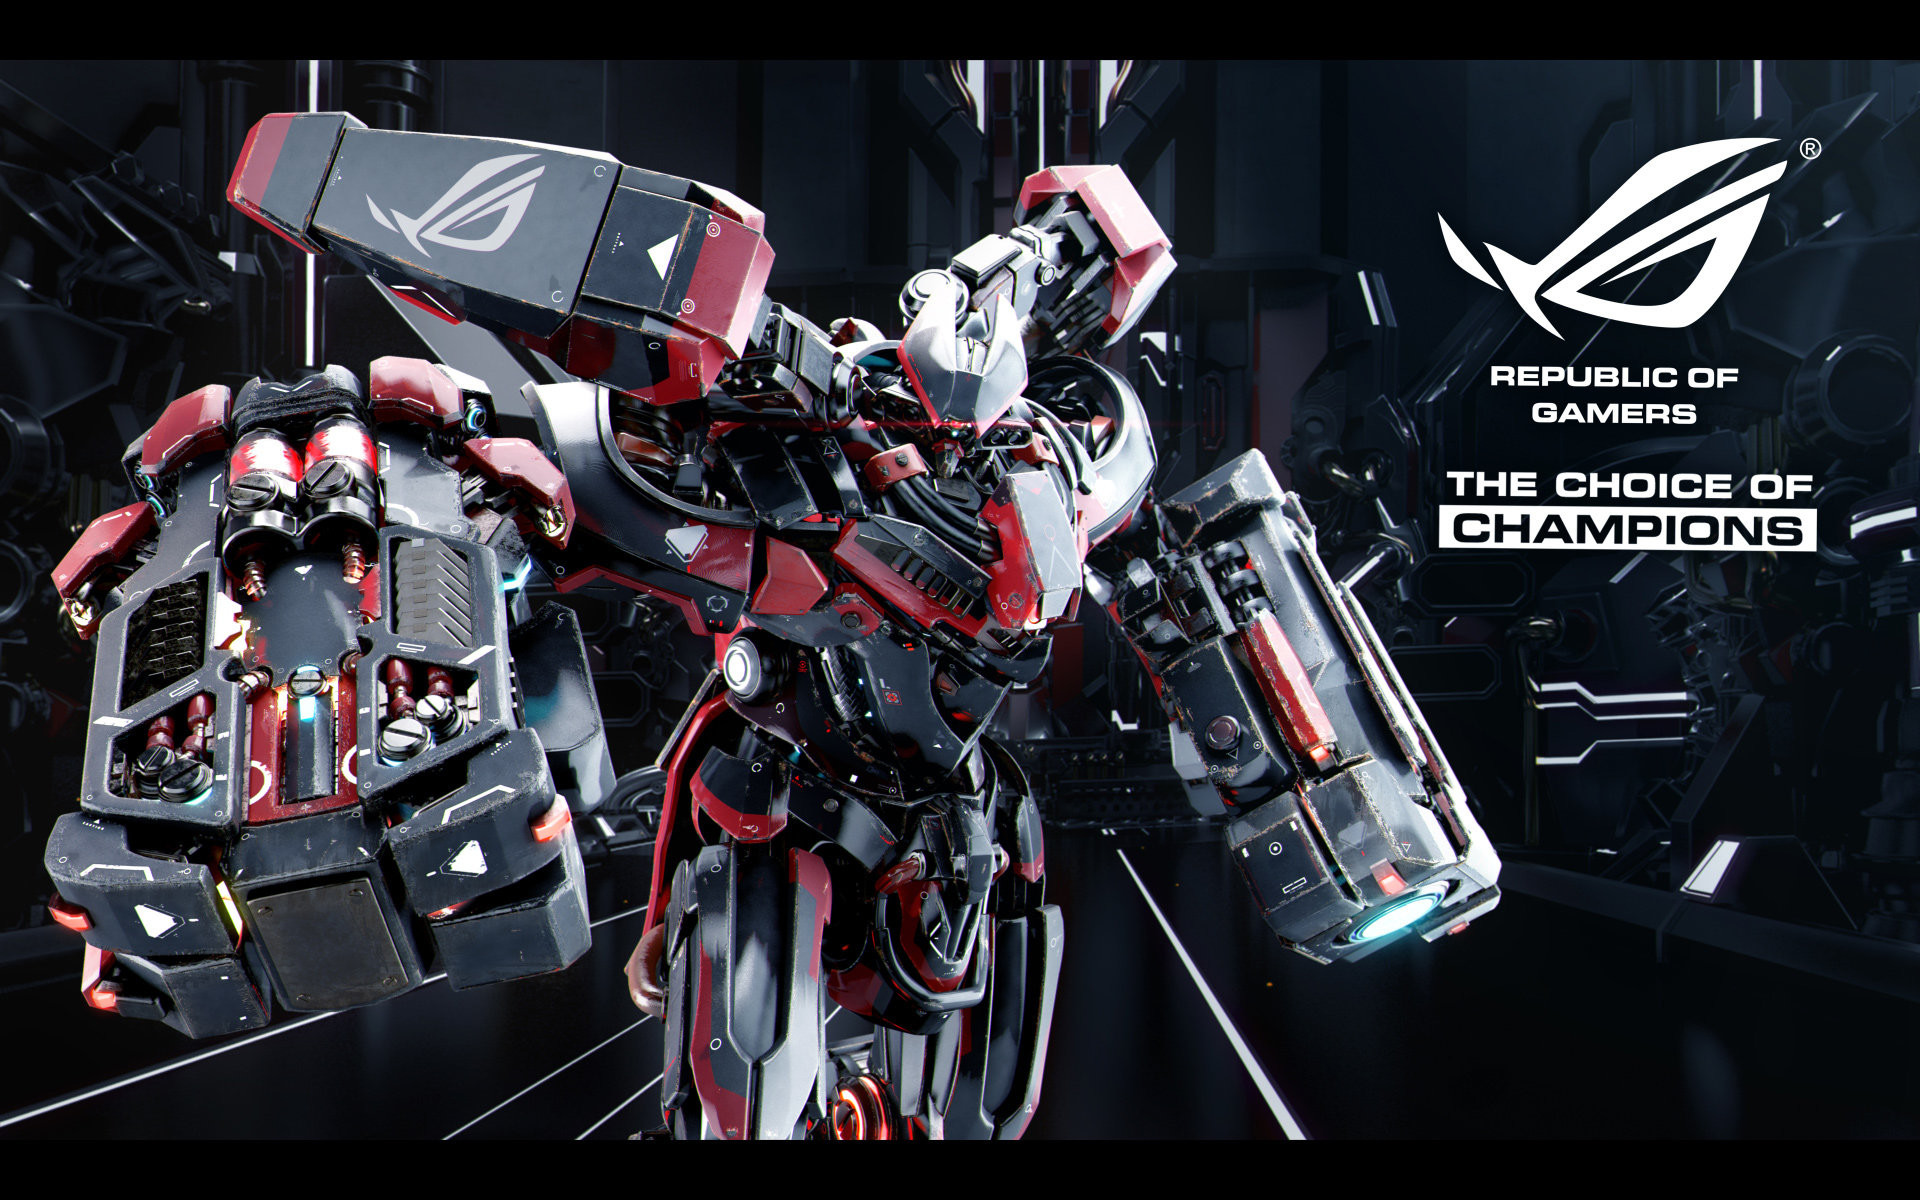 New ROG Wallpapers [Mecha!] – Aug 2013 – WQHD and 4K now available.  [Archive] – ASUS Republic of Gamers [ROG]   The Choice of Champions –  Overclocking, …